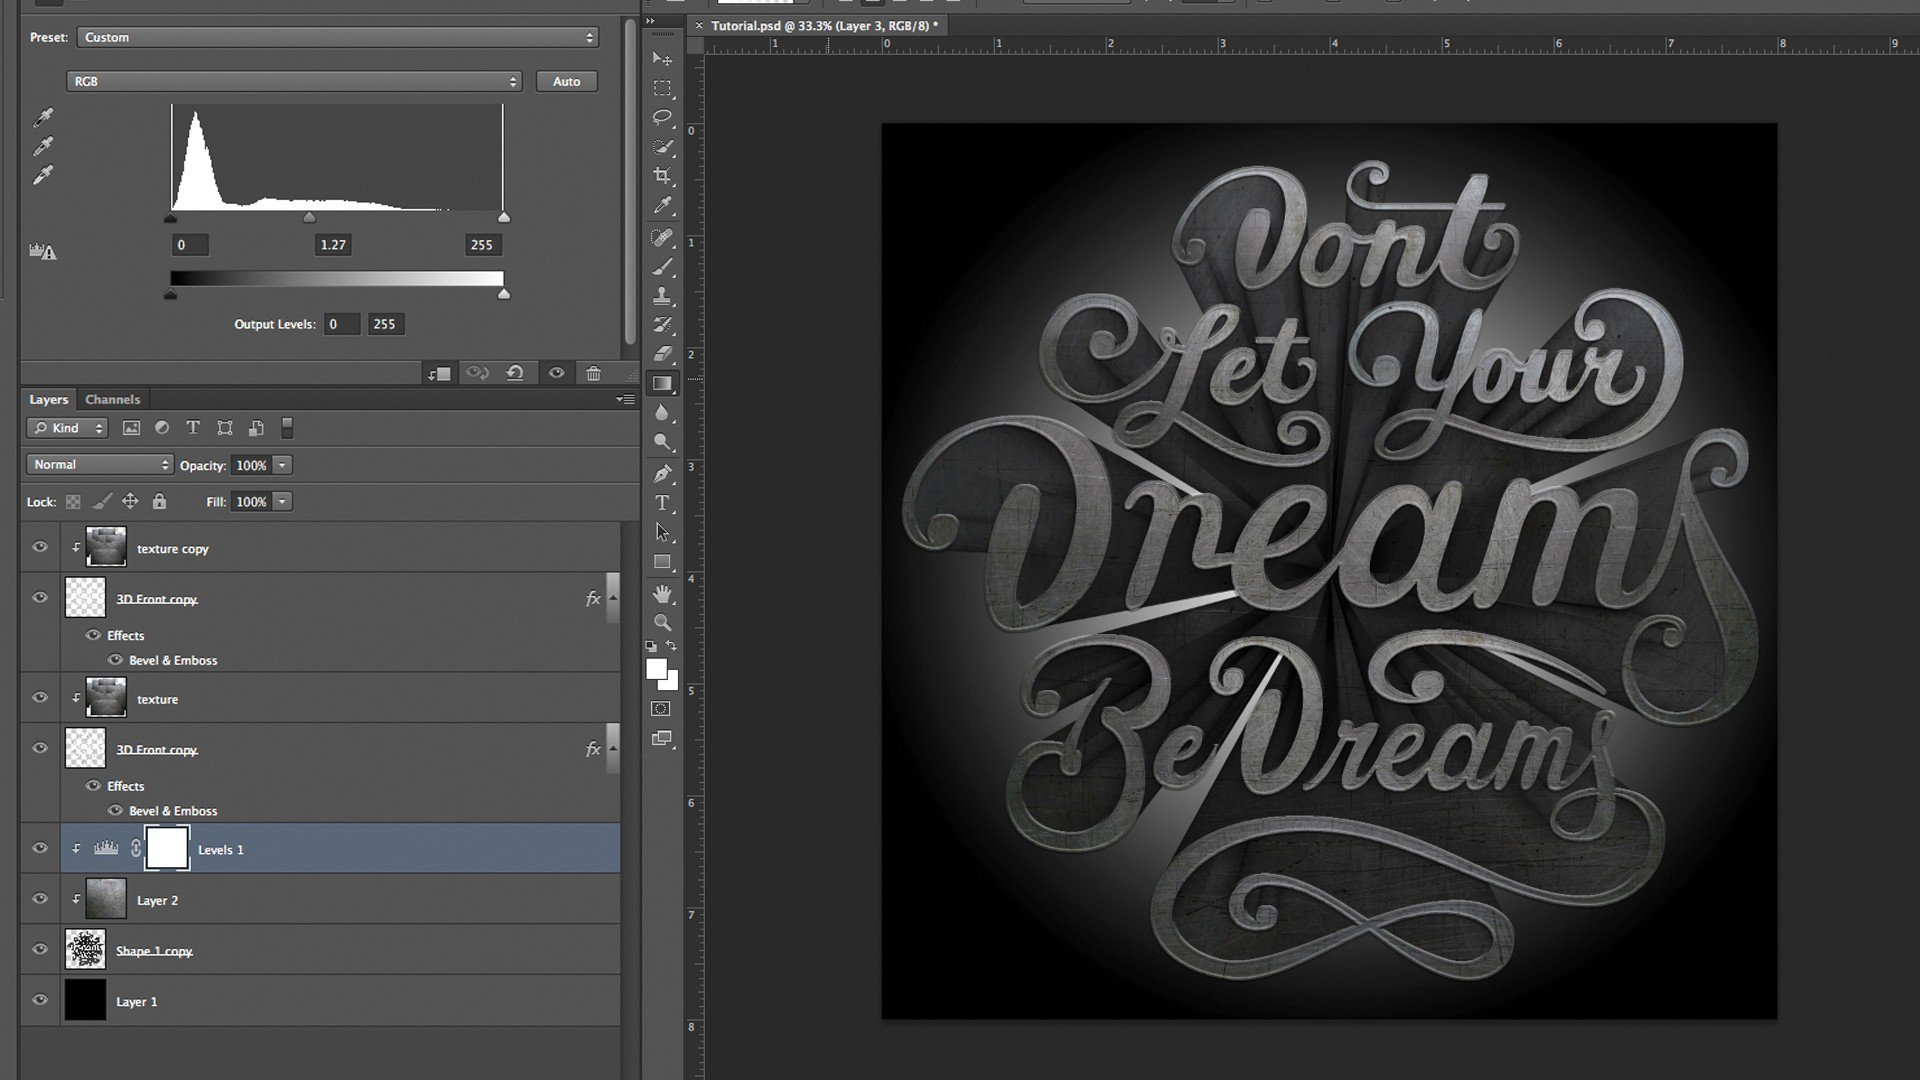 3D Text Photoshop CC